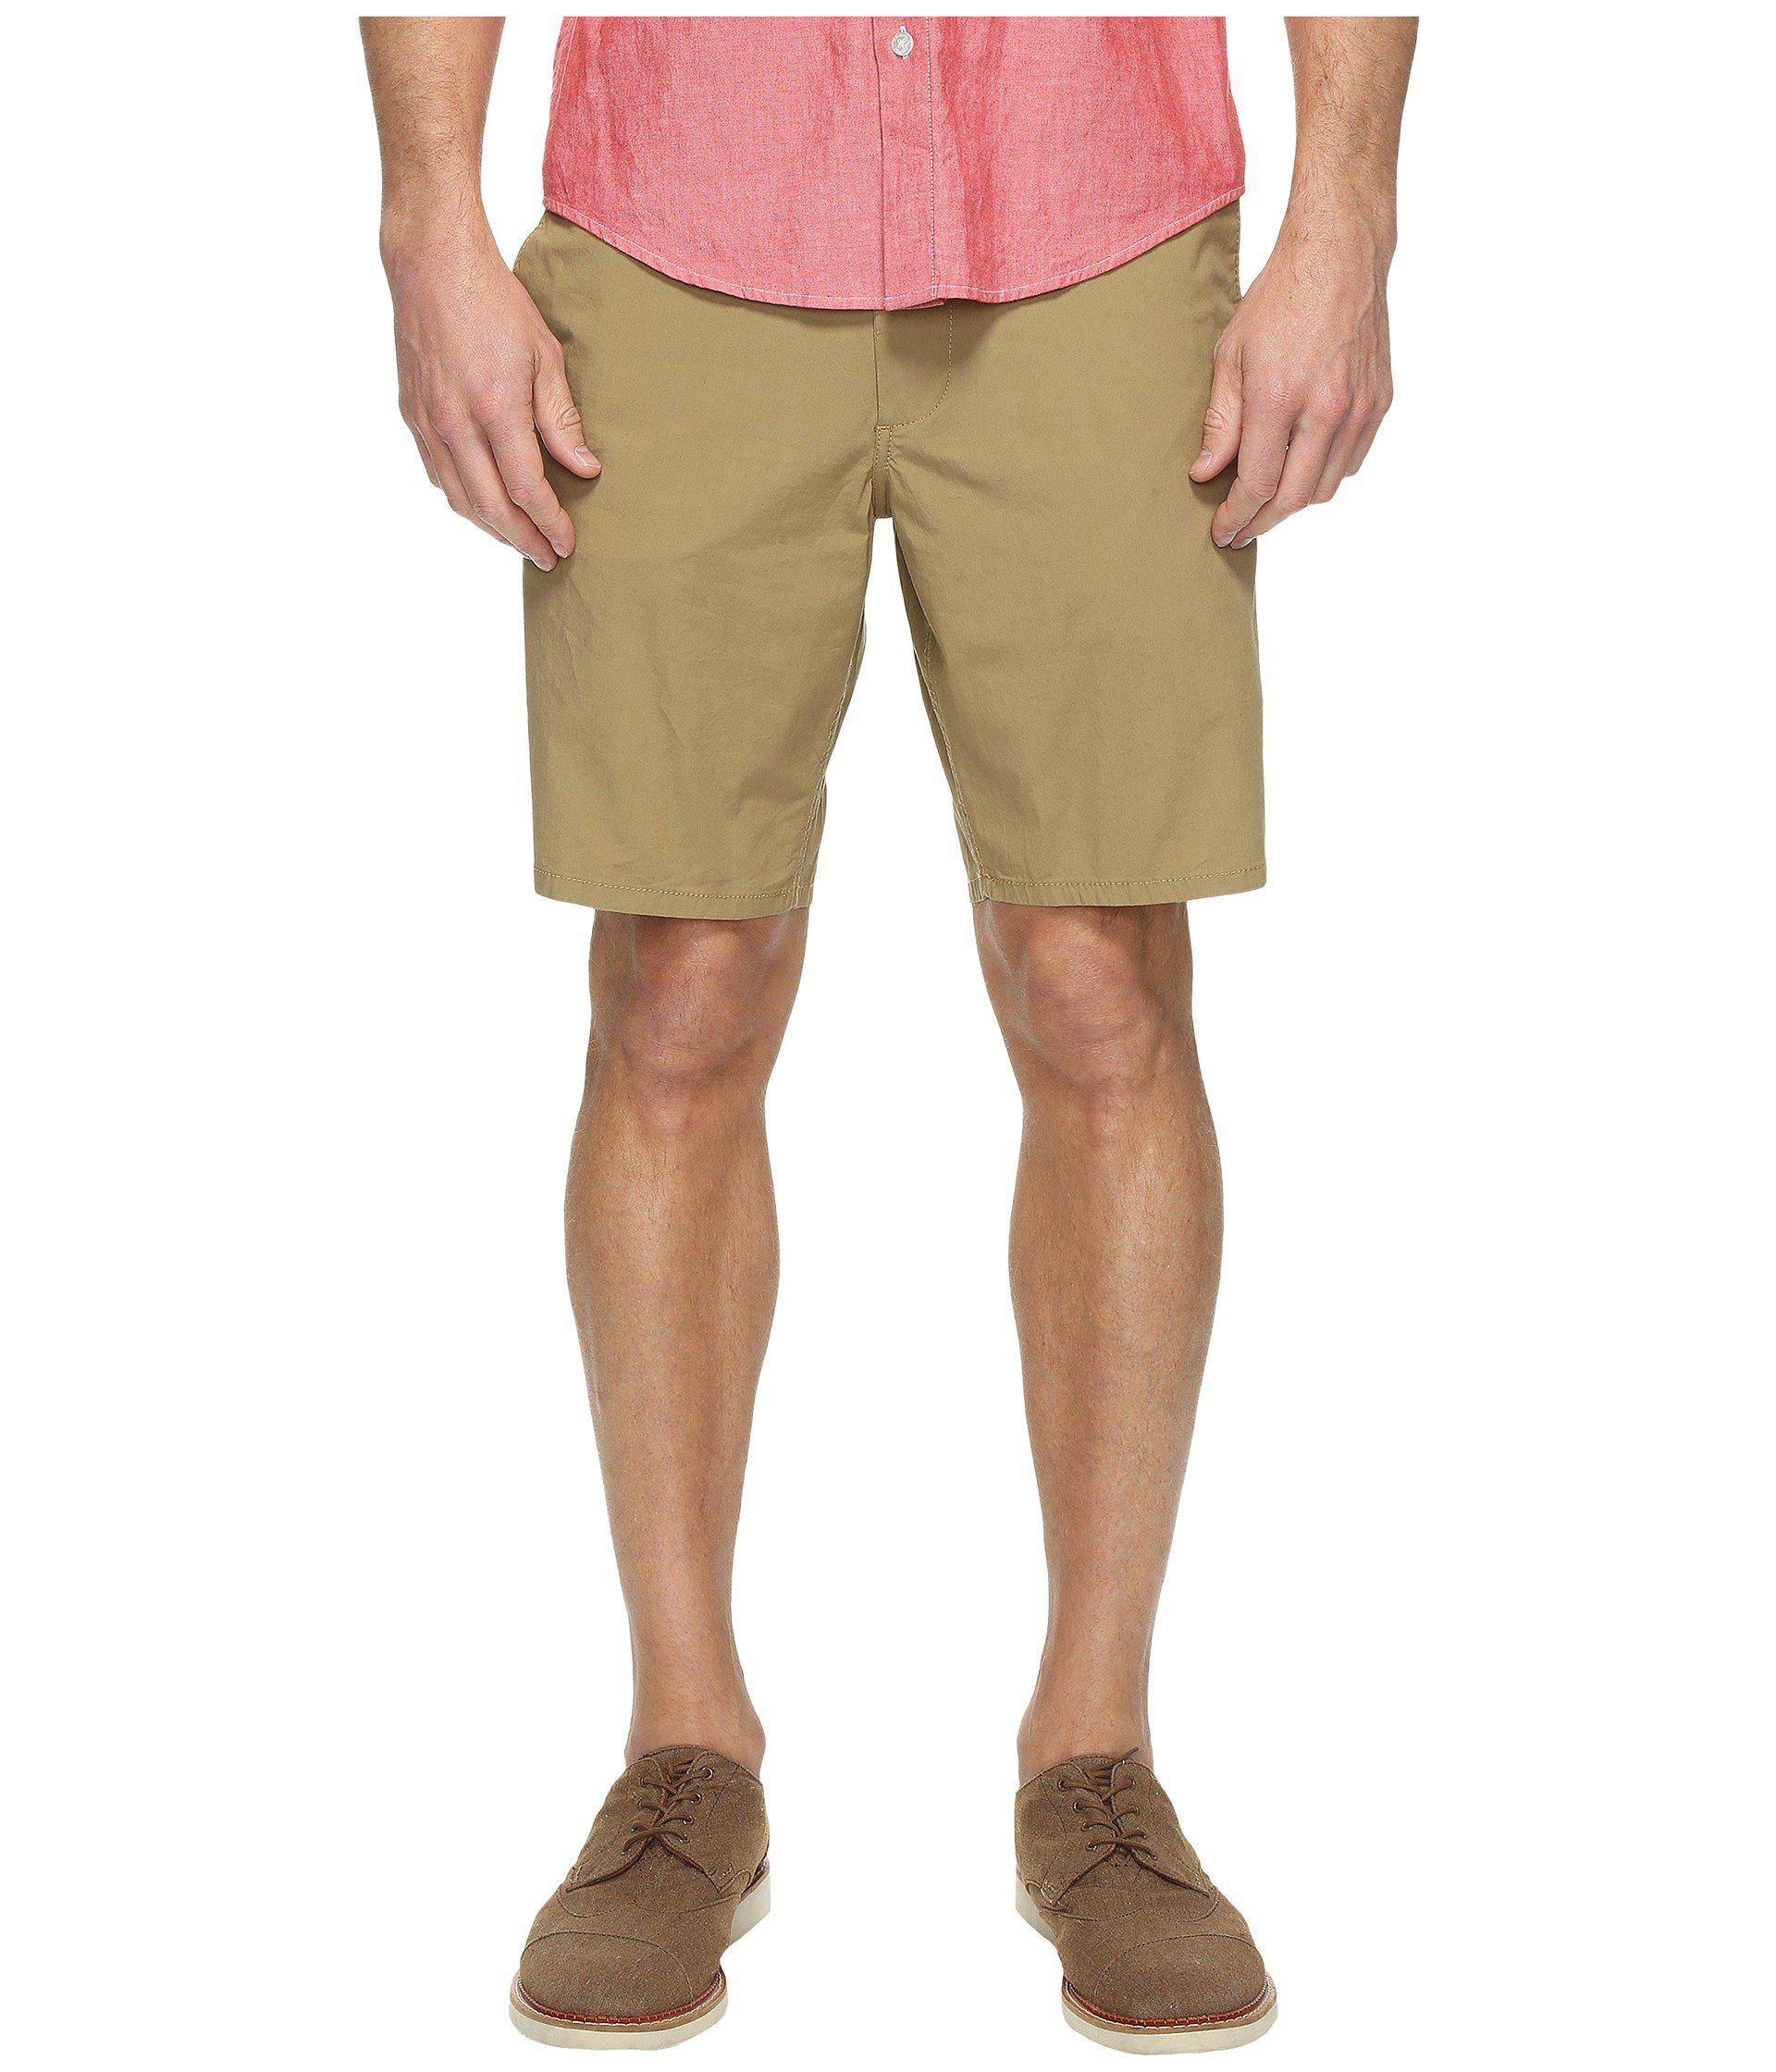 e75af04eeb Lyst - Dockers Core Flat Front Straight Shorts in Natural for Men ...